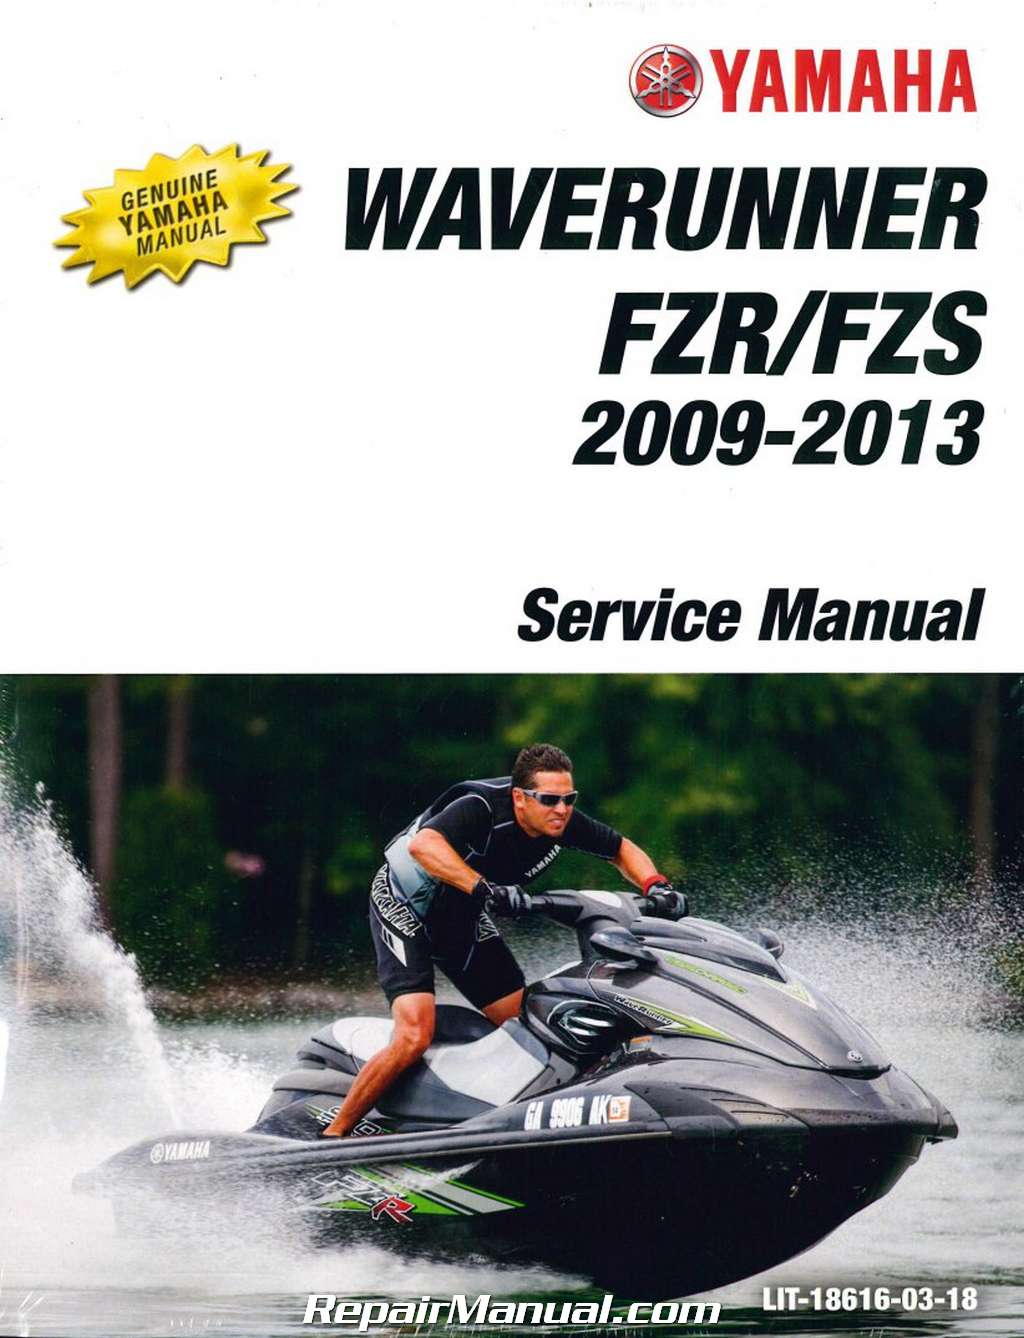 Yamaha Jet Ski Manuals